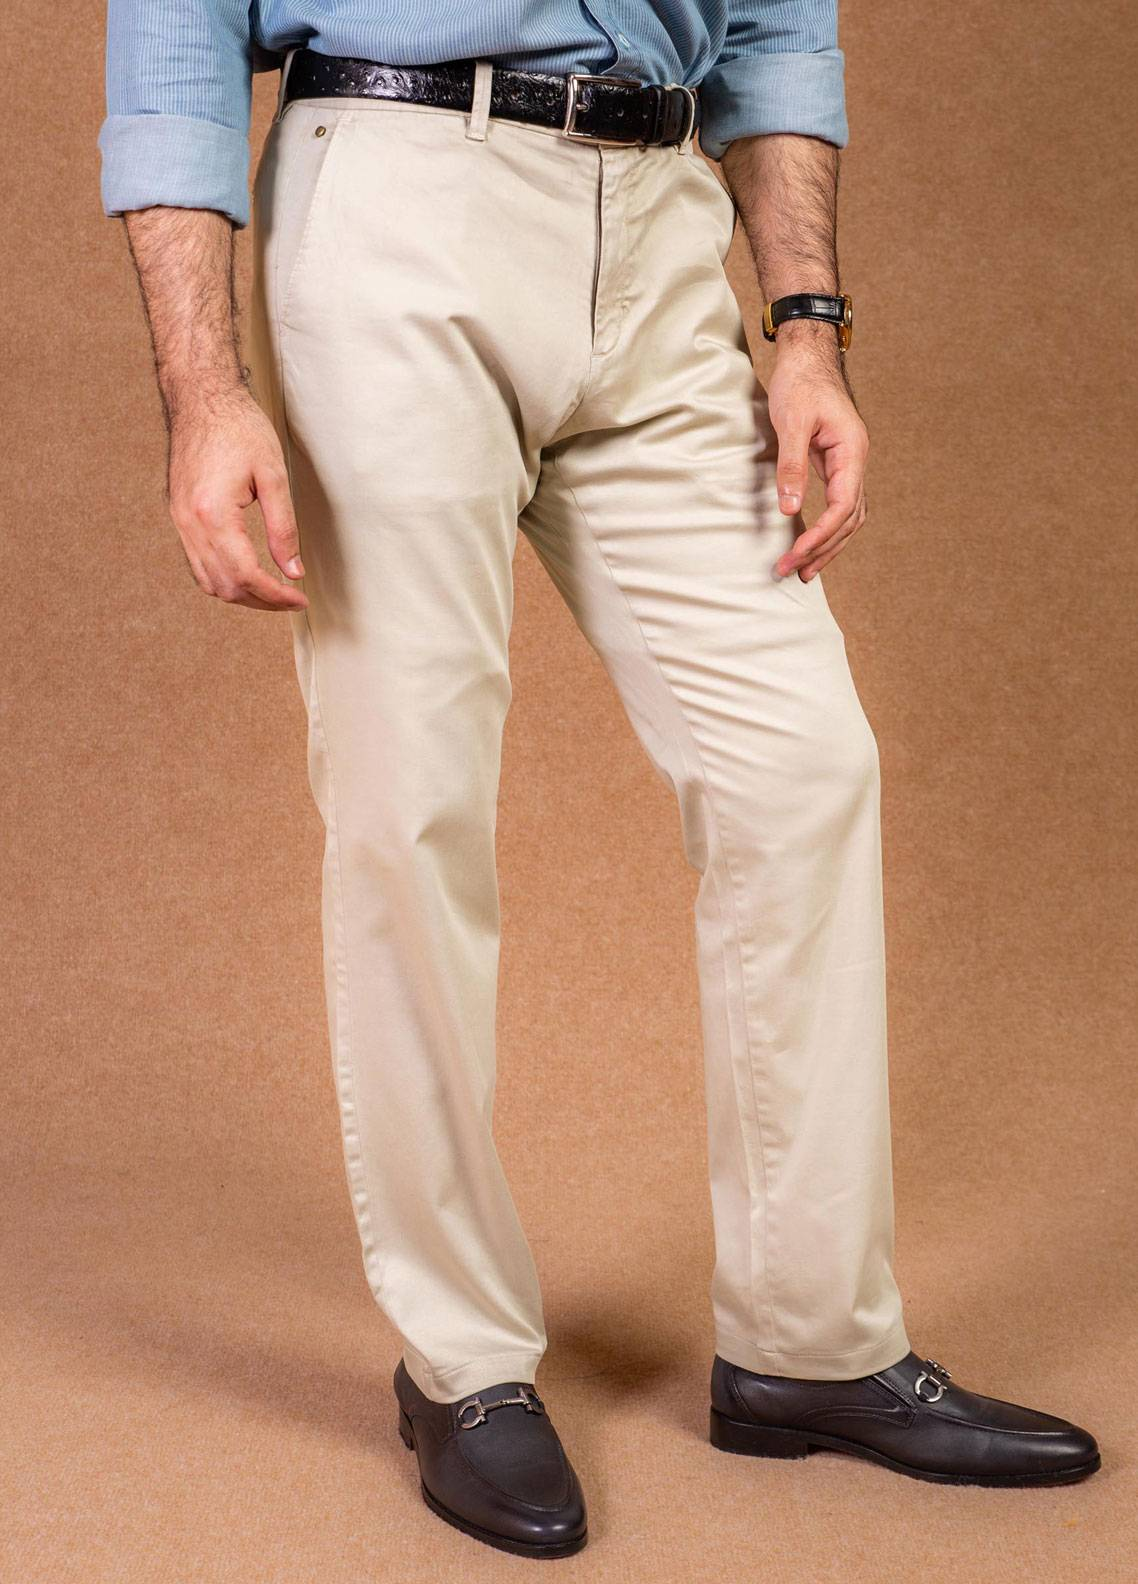 Brumano Cotton Formal Pants for Men -  BRM-008 Beige